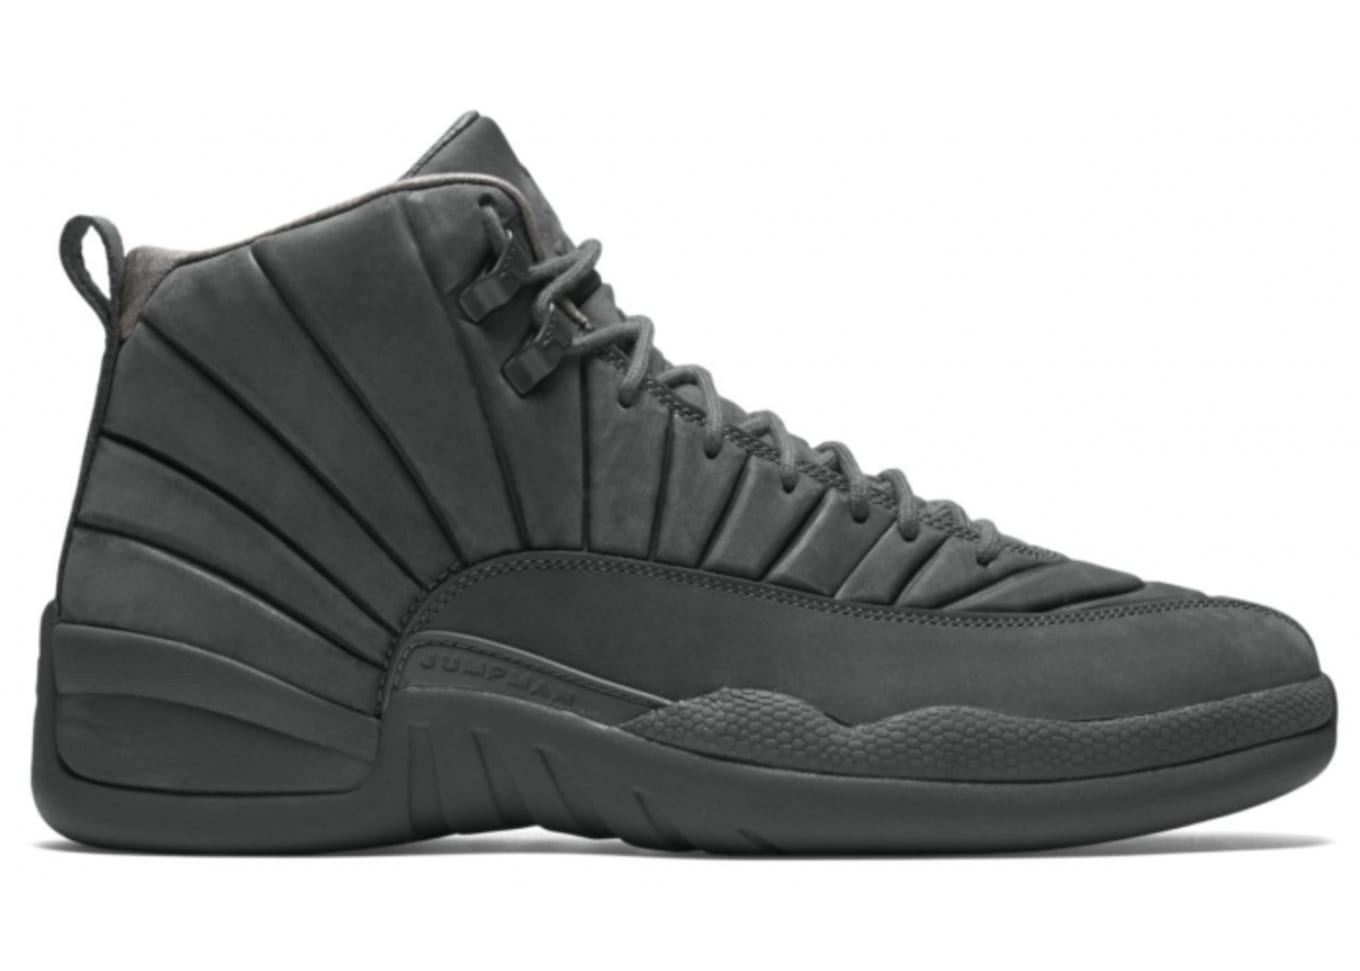 bdfa174c3ee8bd Air Jordan 12 Price Guide